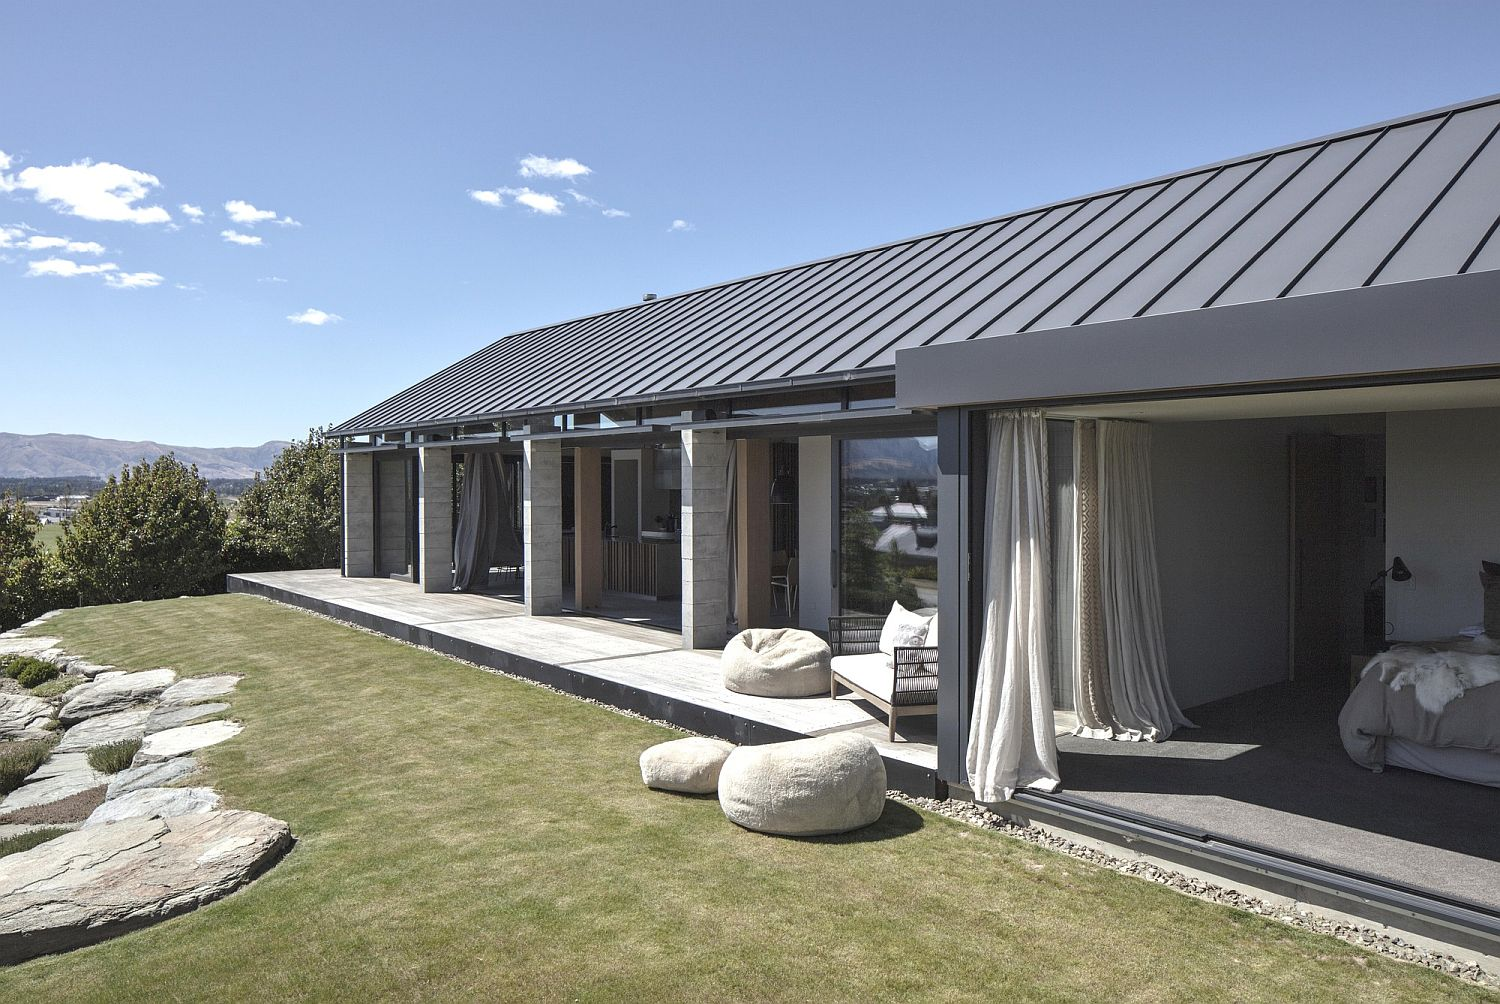 Open design of the house connected to the landscape outside